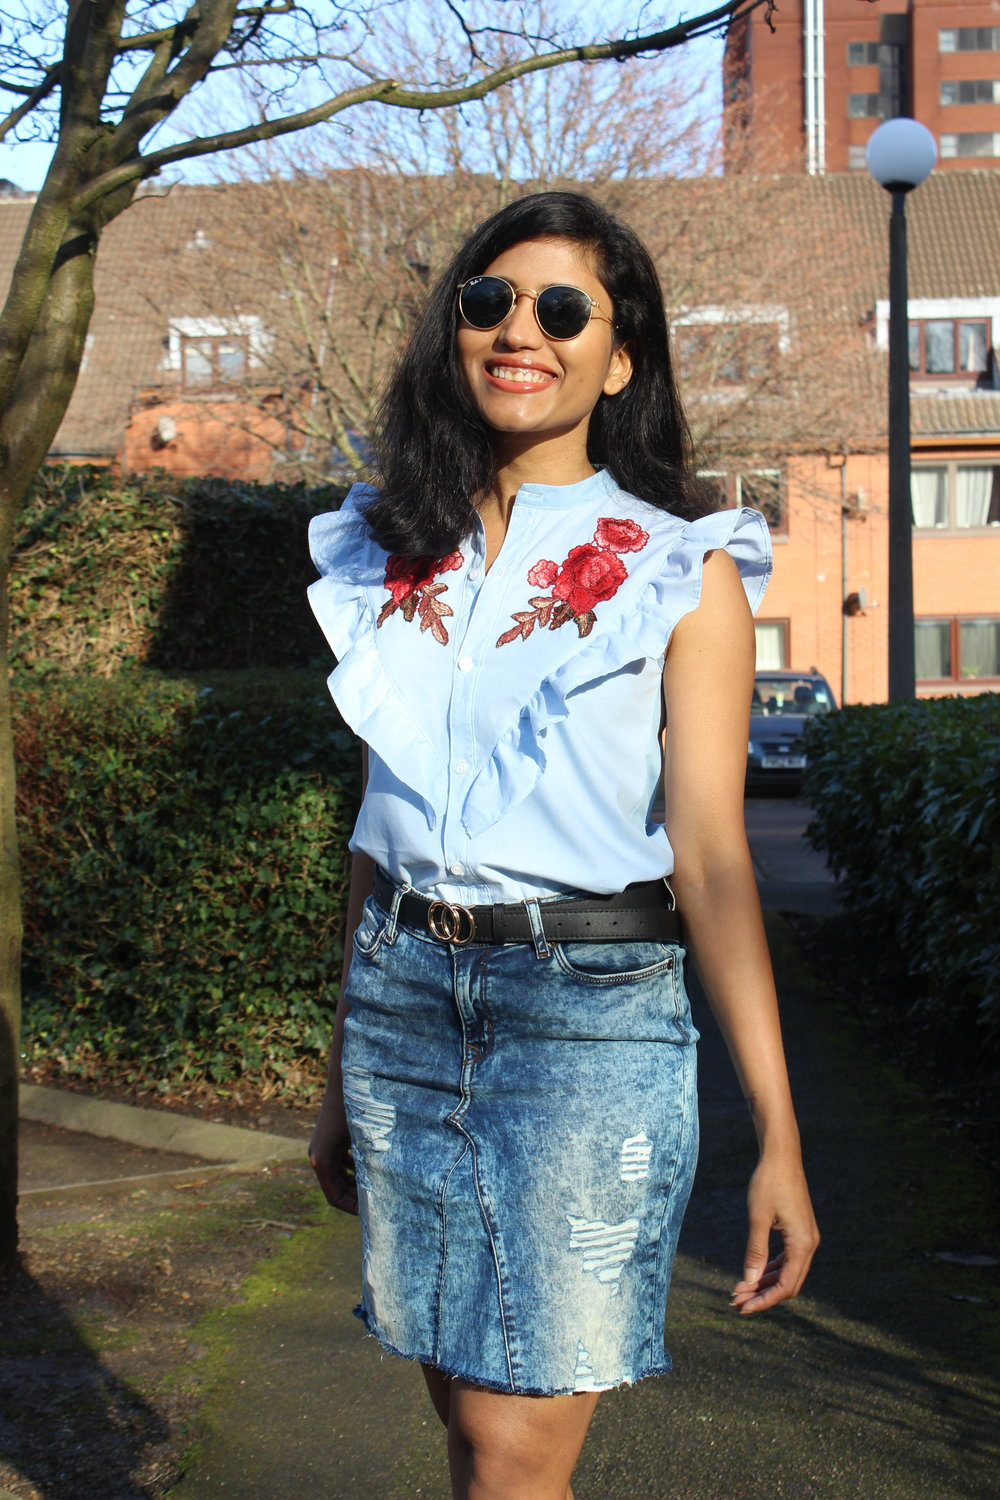 Sew Your Style 2019 | Refashion | Jacqueline Edwards (AFTER)